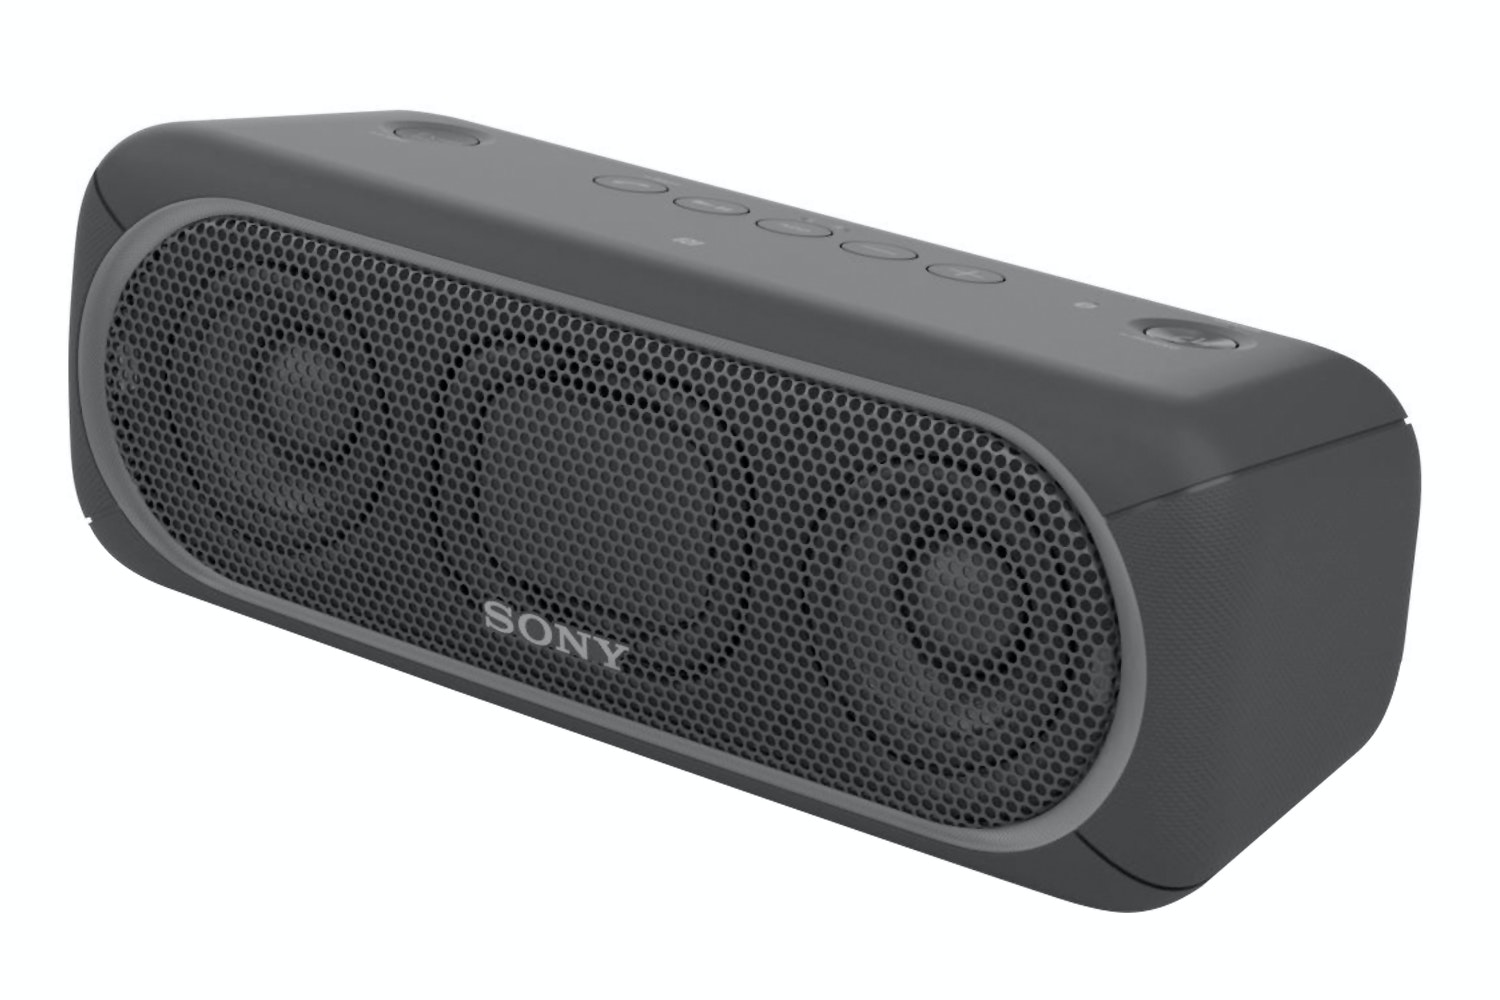 Sony Bluetooth Speaker | SRS-XB30 | Black